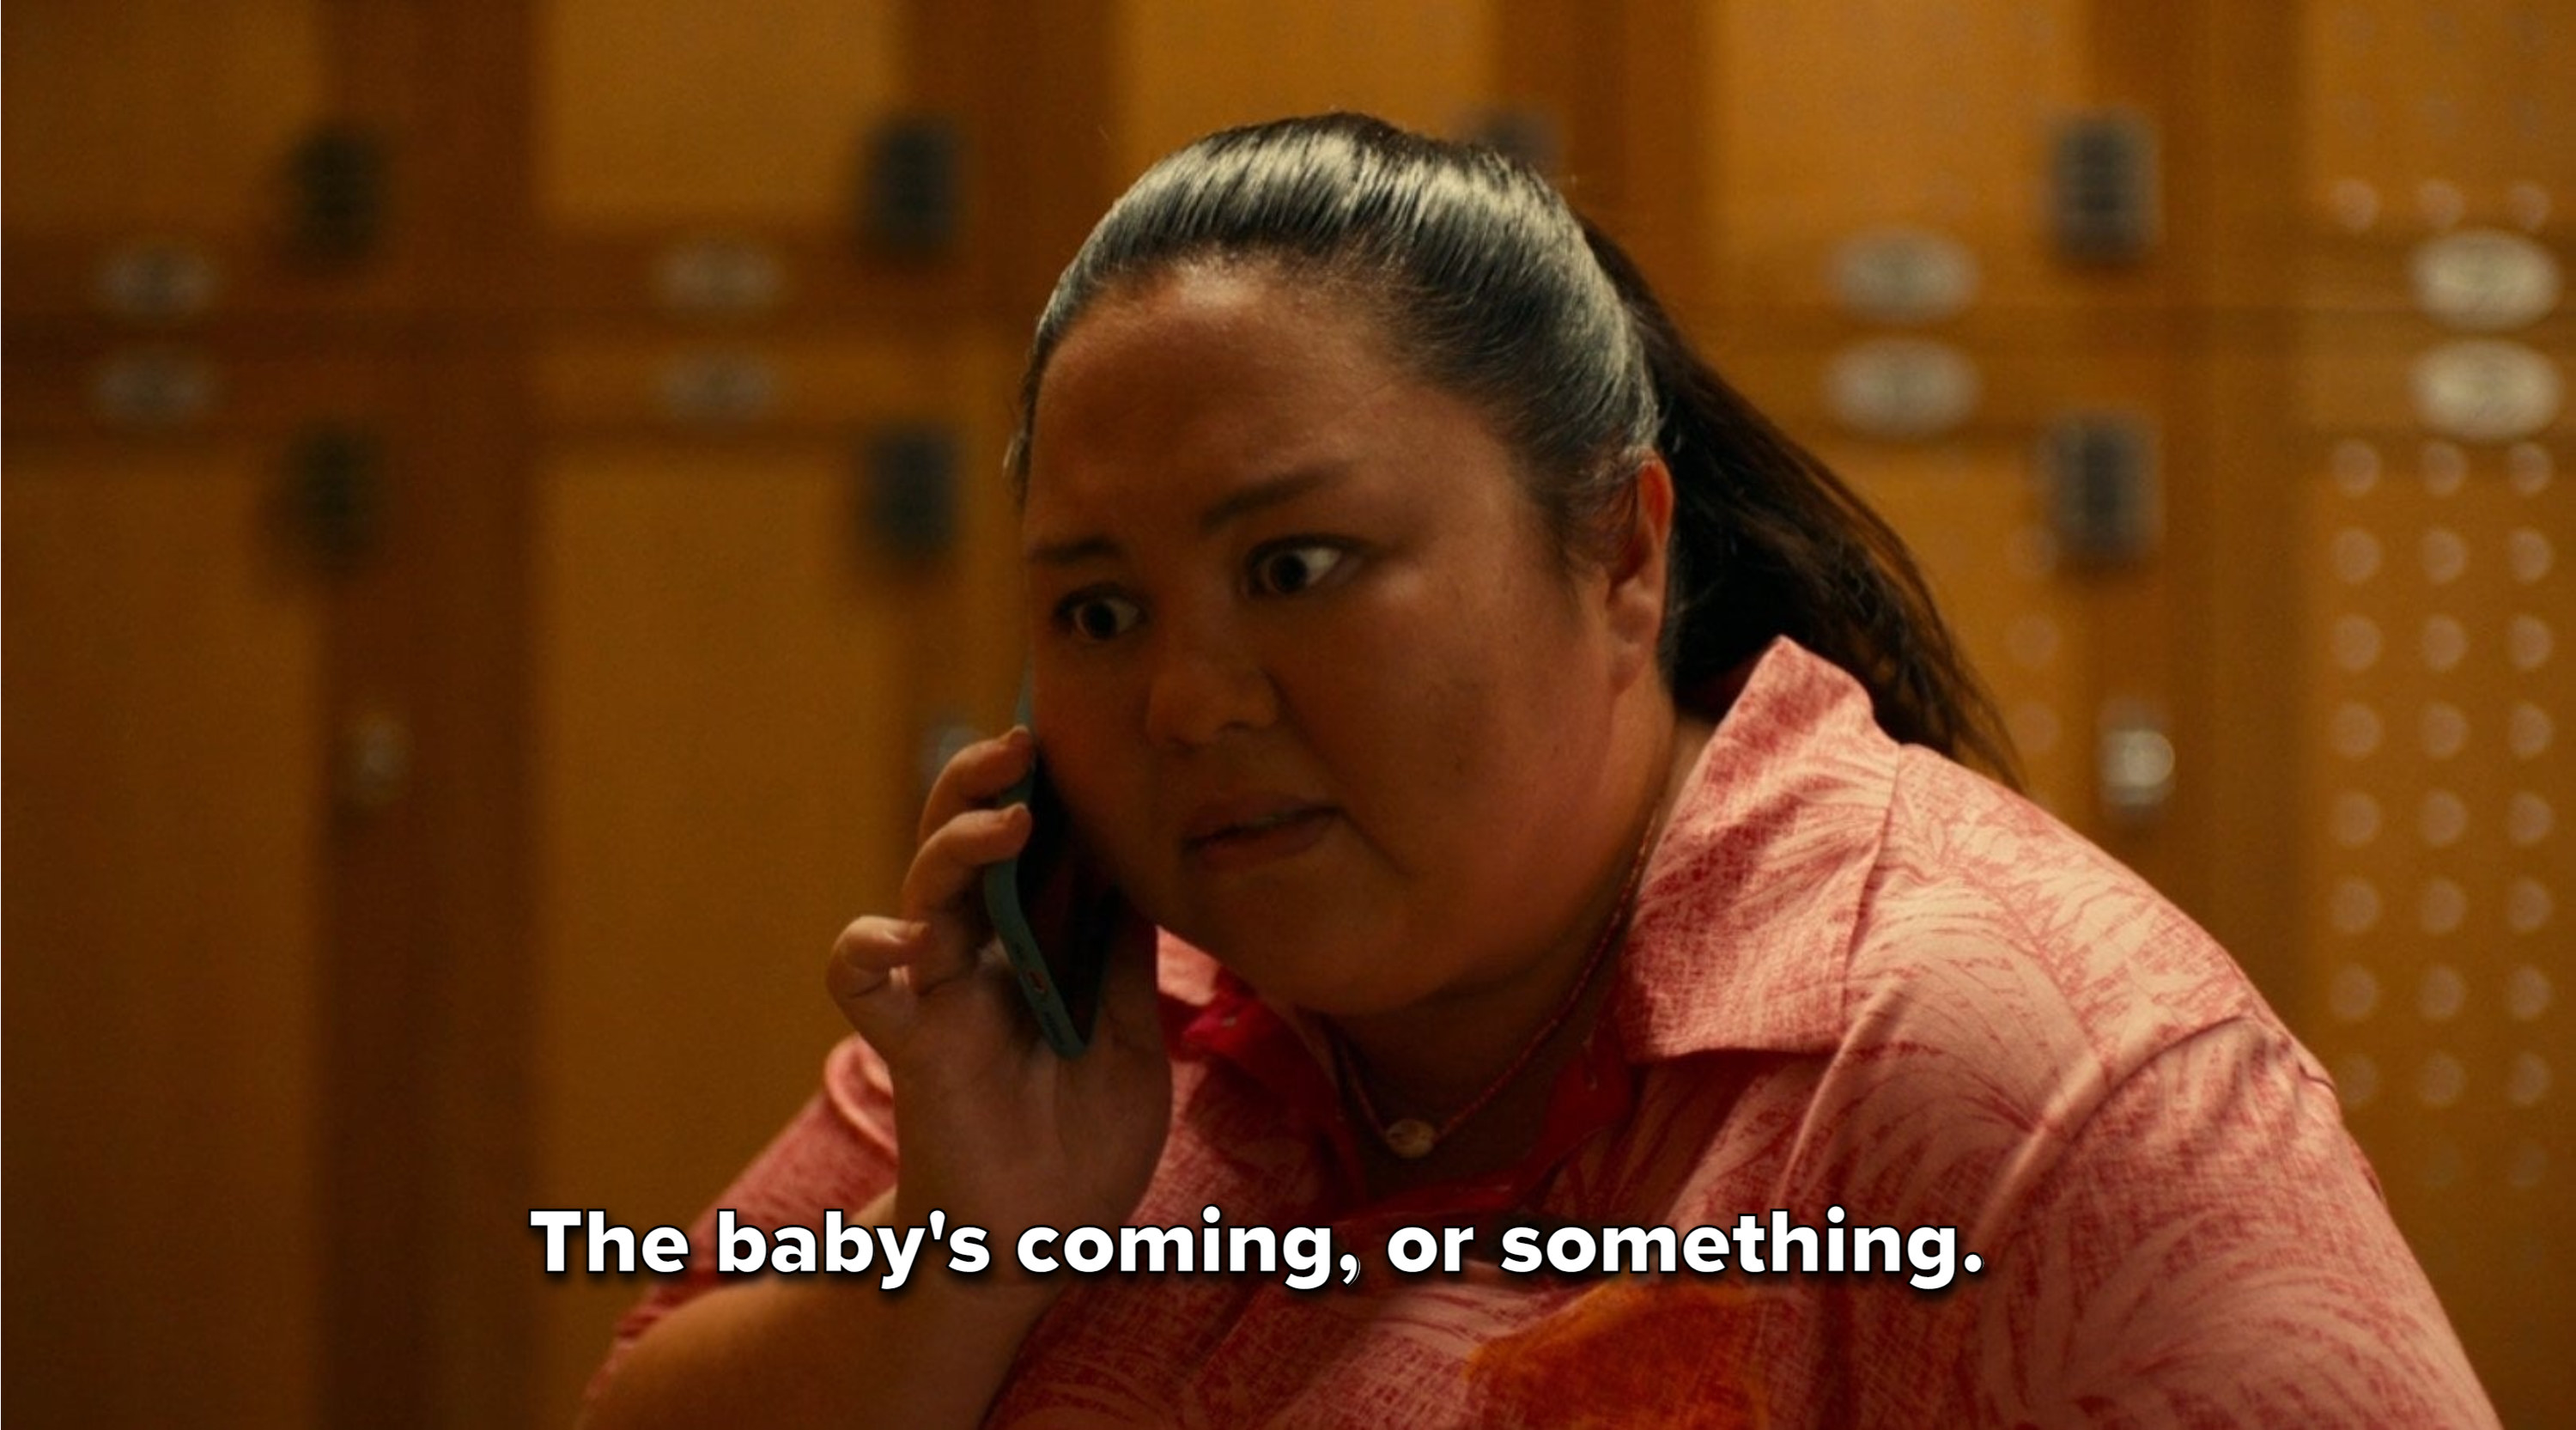 Lani tells Darrell that the baby is coming